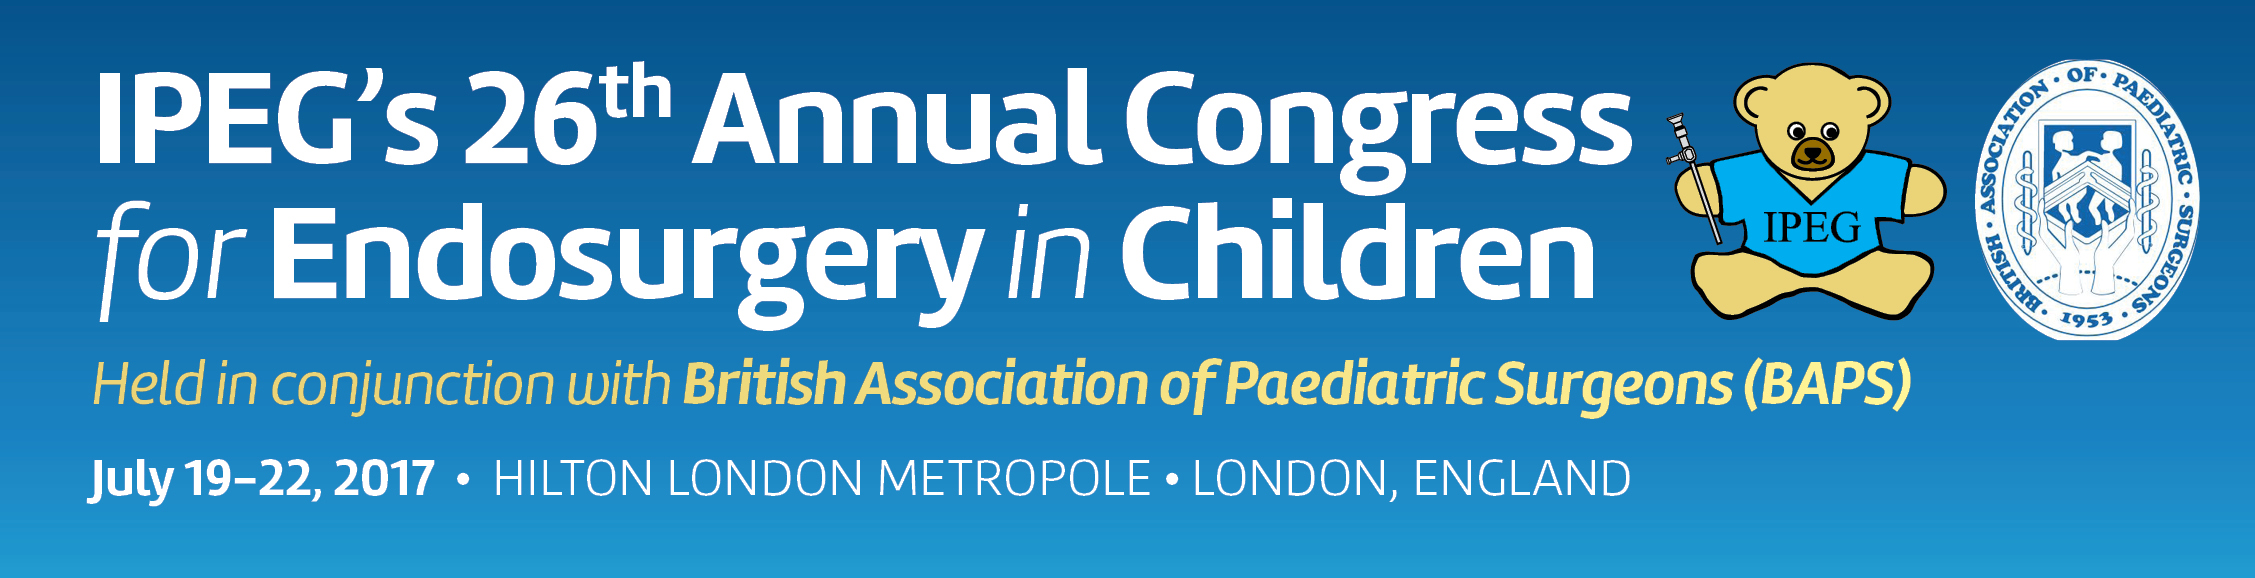 IPEG's 26th Annual Congress for Endosurgery in Children 2017